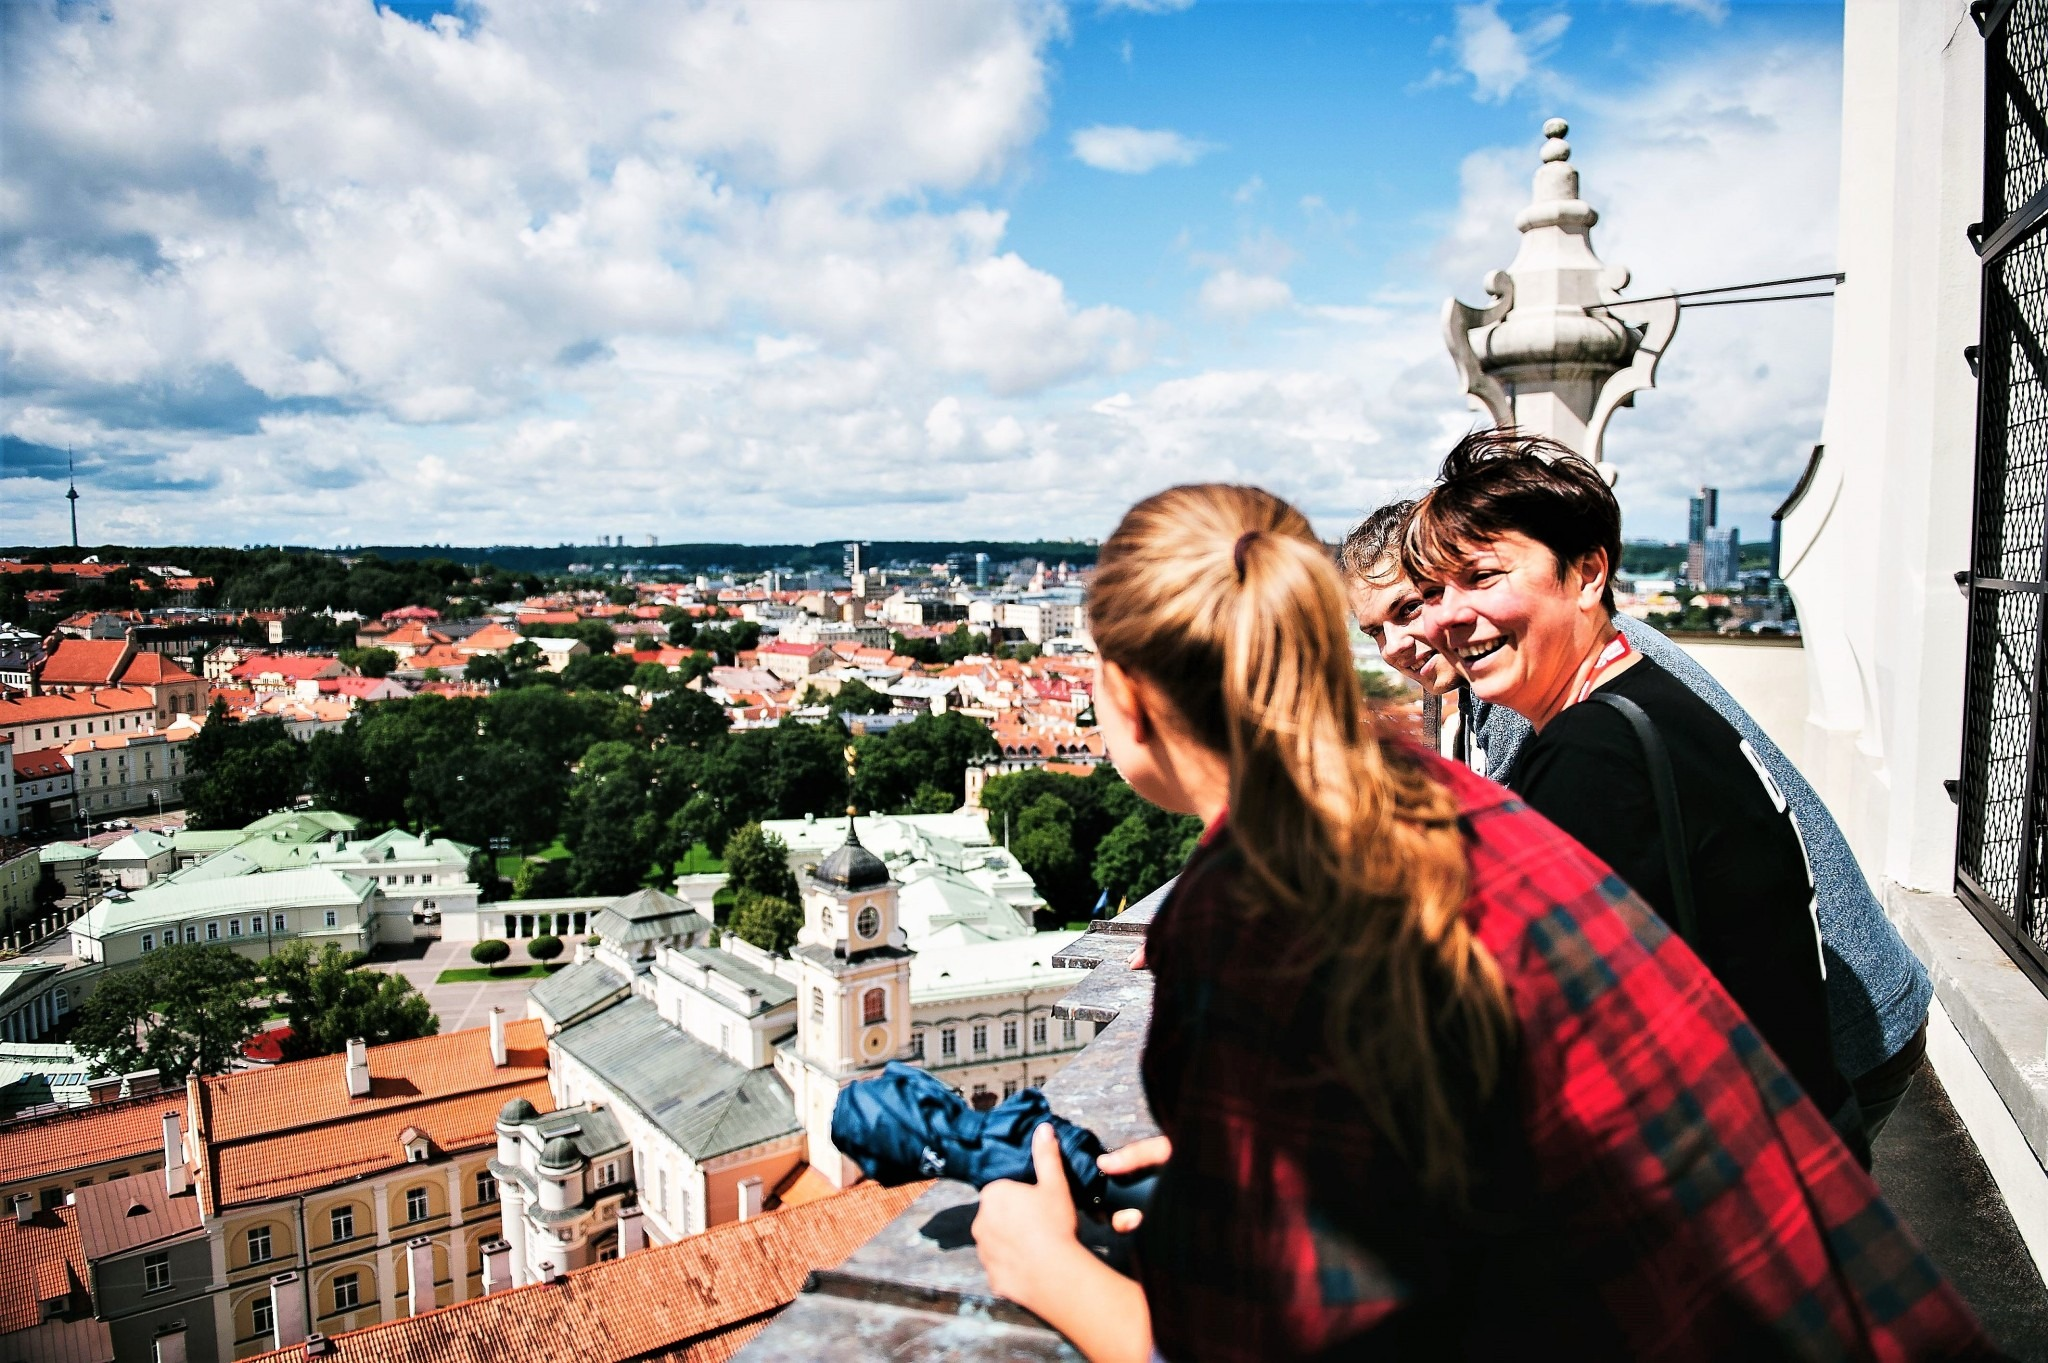 travellers looking out over the Vilnius skyline